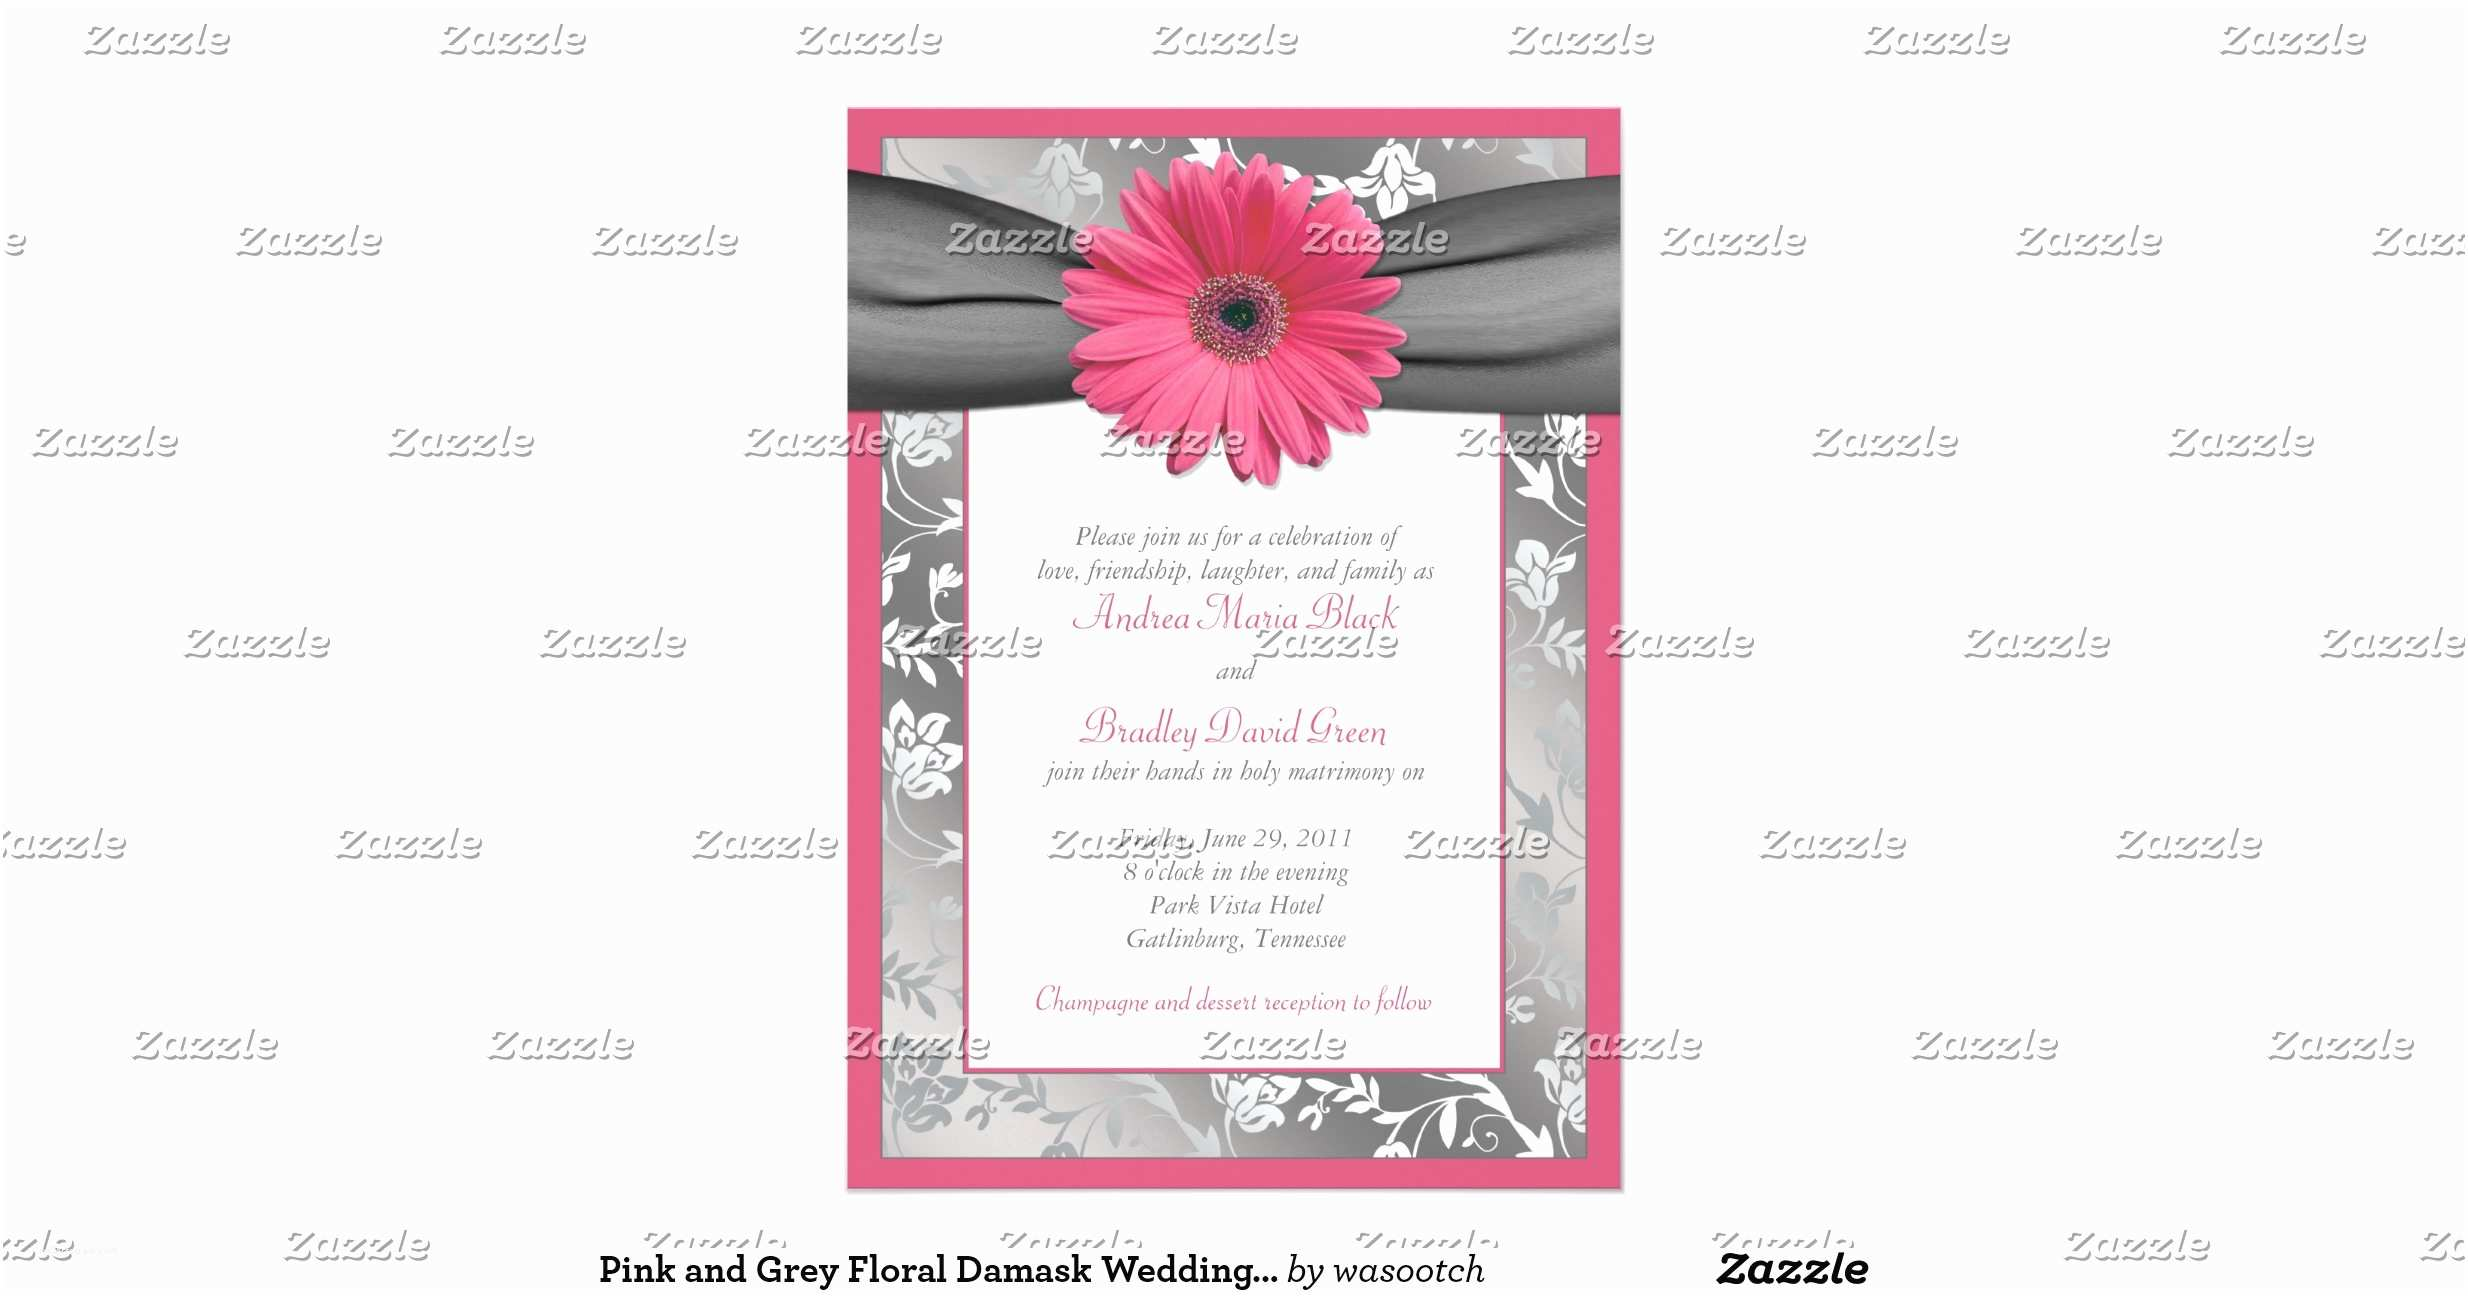 Pink And Grey Wedding S Pink And Grey Floral Damask Wedding